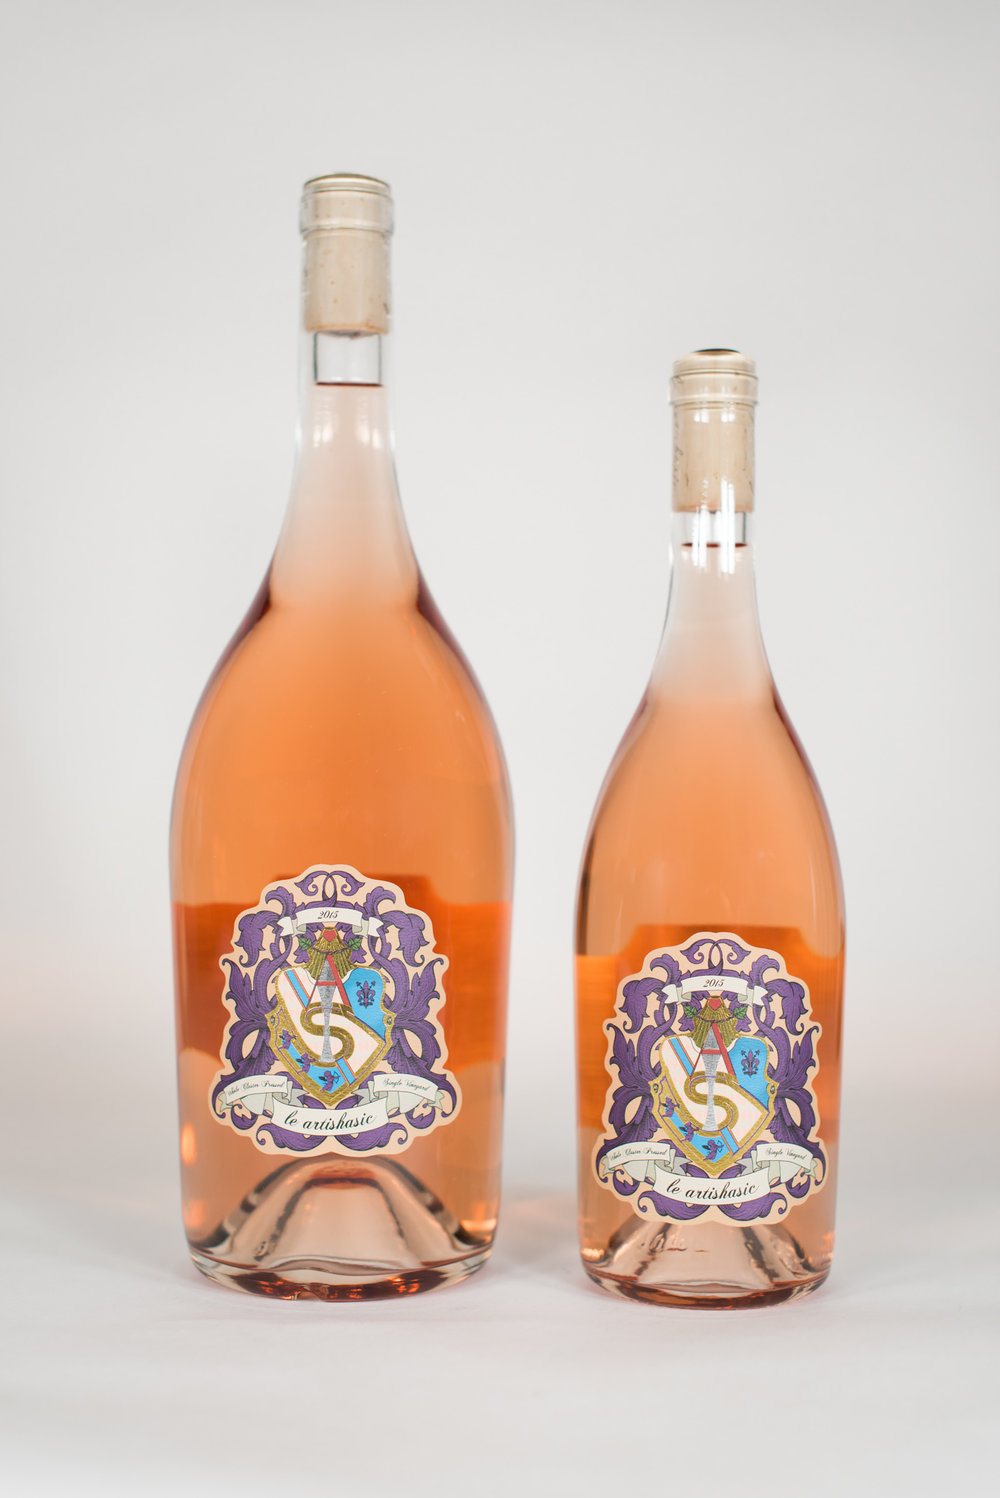 025-le_artishasic-2015_Rose-1.5L_750ml.jpg